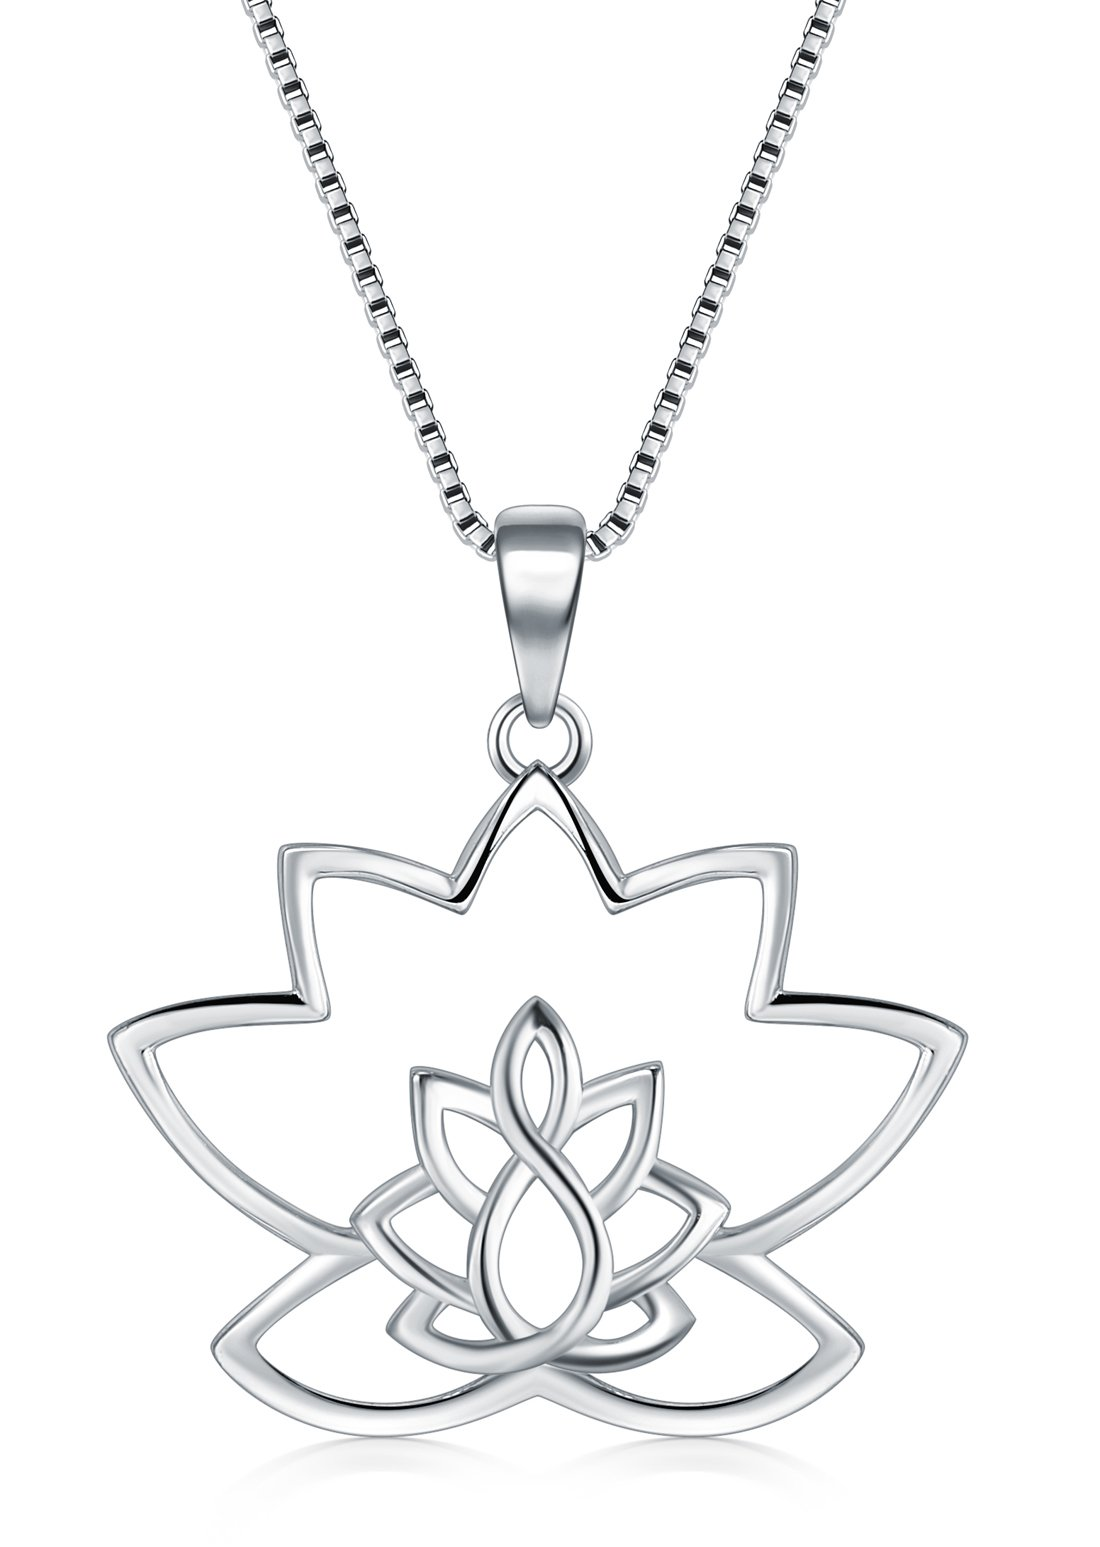 Sterling Silver Necklaces, Boruo 925 Silver Necklaces with Pendant Lotus Flower Yoga Box Chain for Women Charm Jewelry